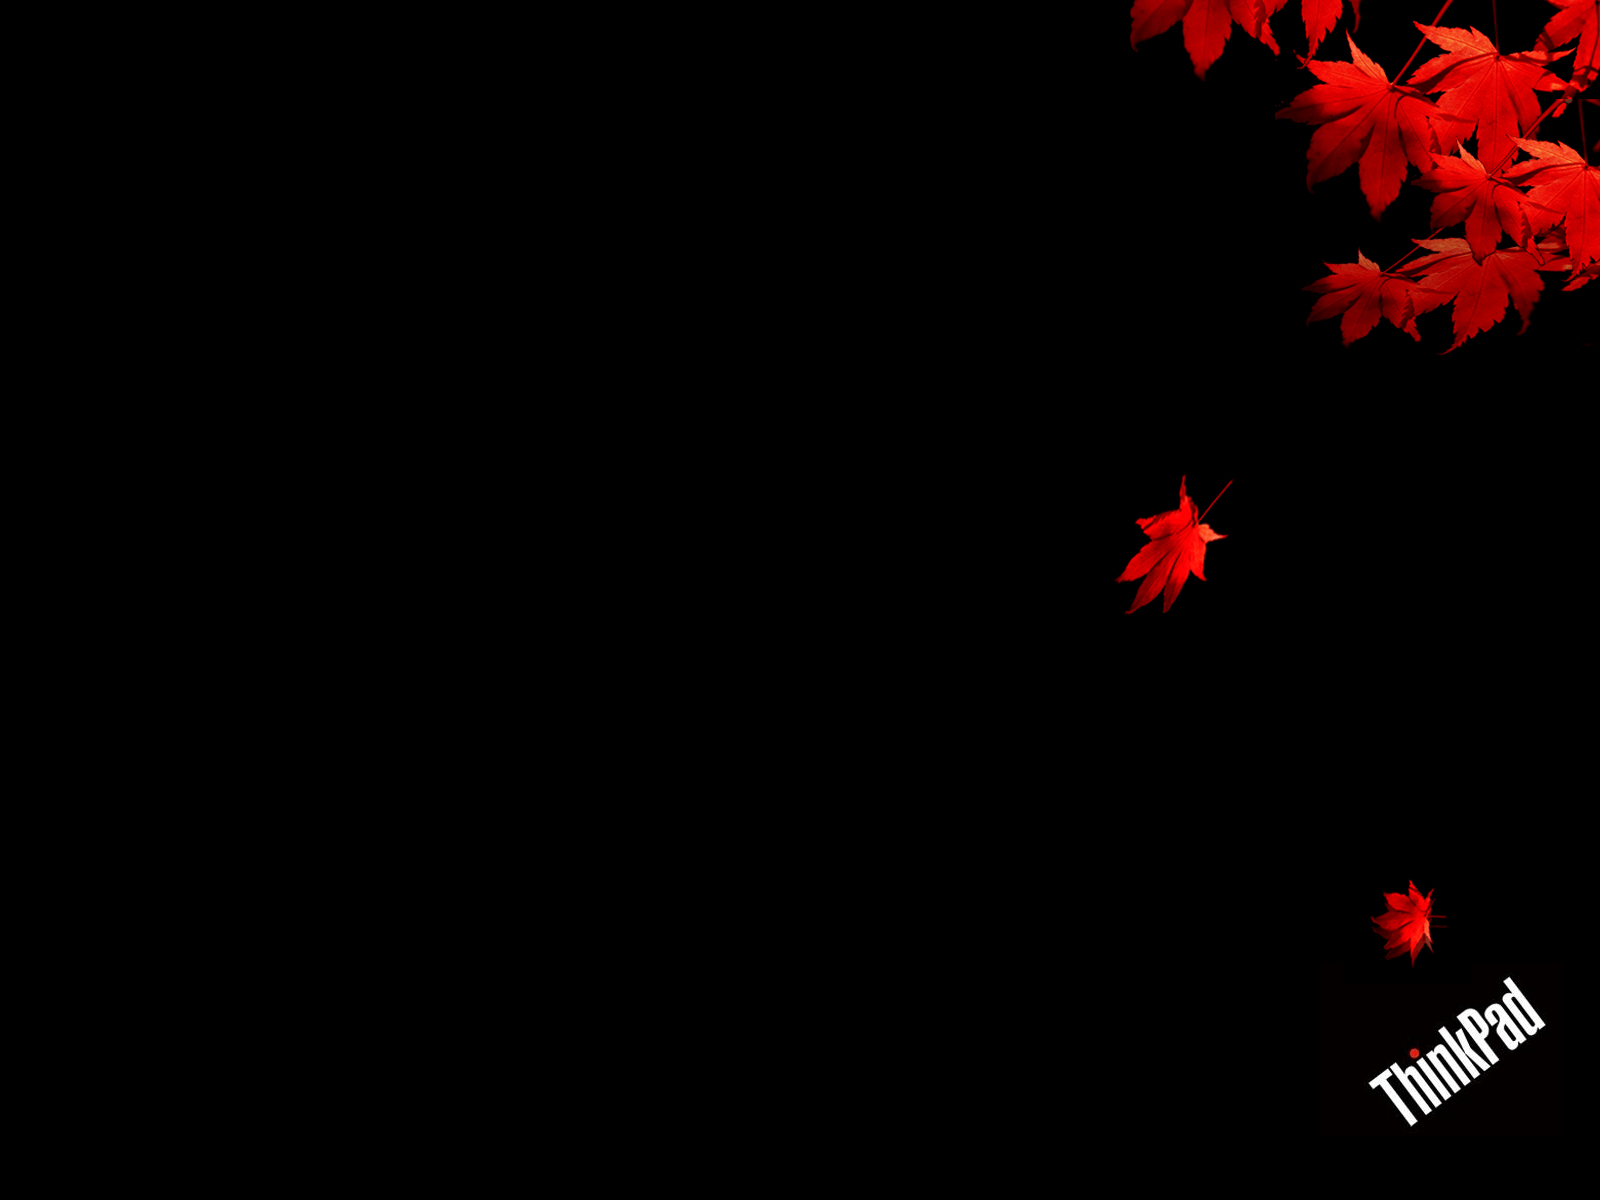 Lenovo thinkpad wallpapers wallpaper cave - New lenovo background ...